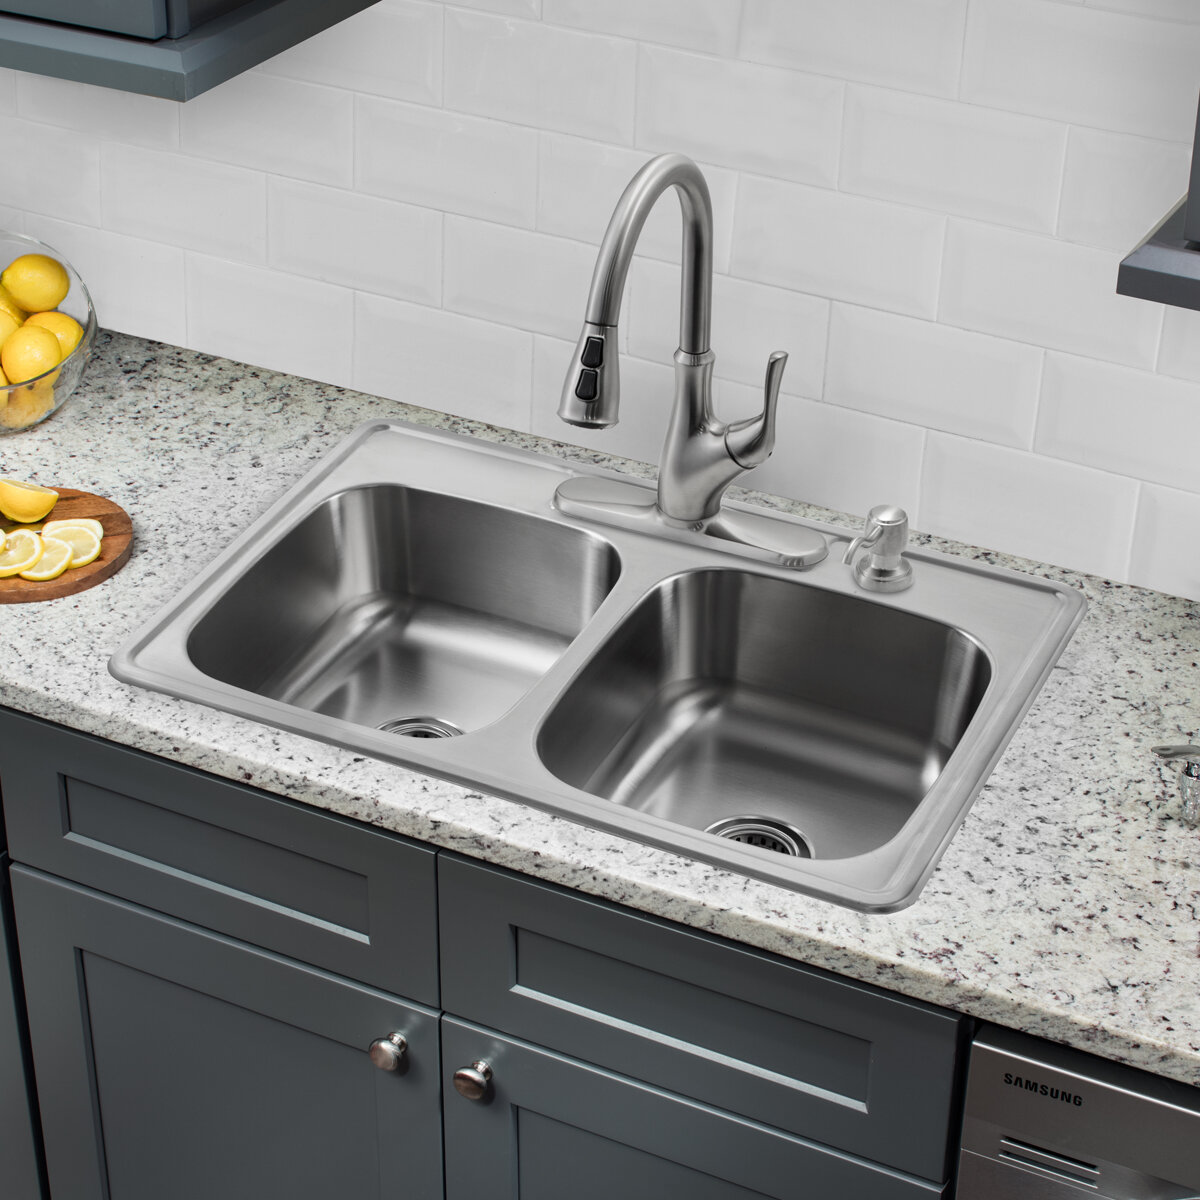 Soleil 33 L X 22 W Double Basin Drop In Kitchen Sink With Faucet